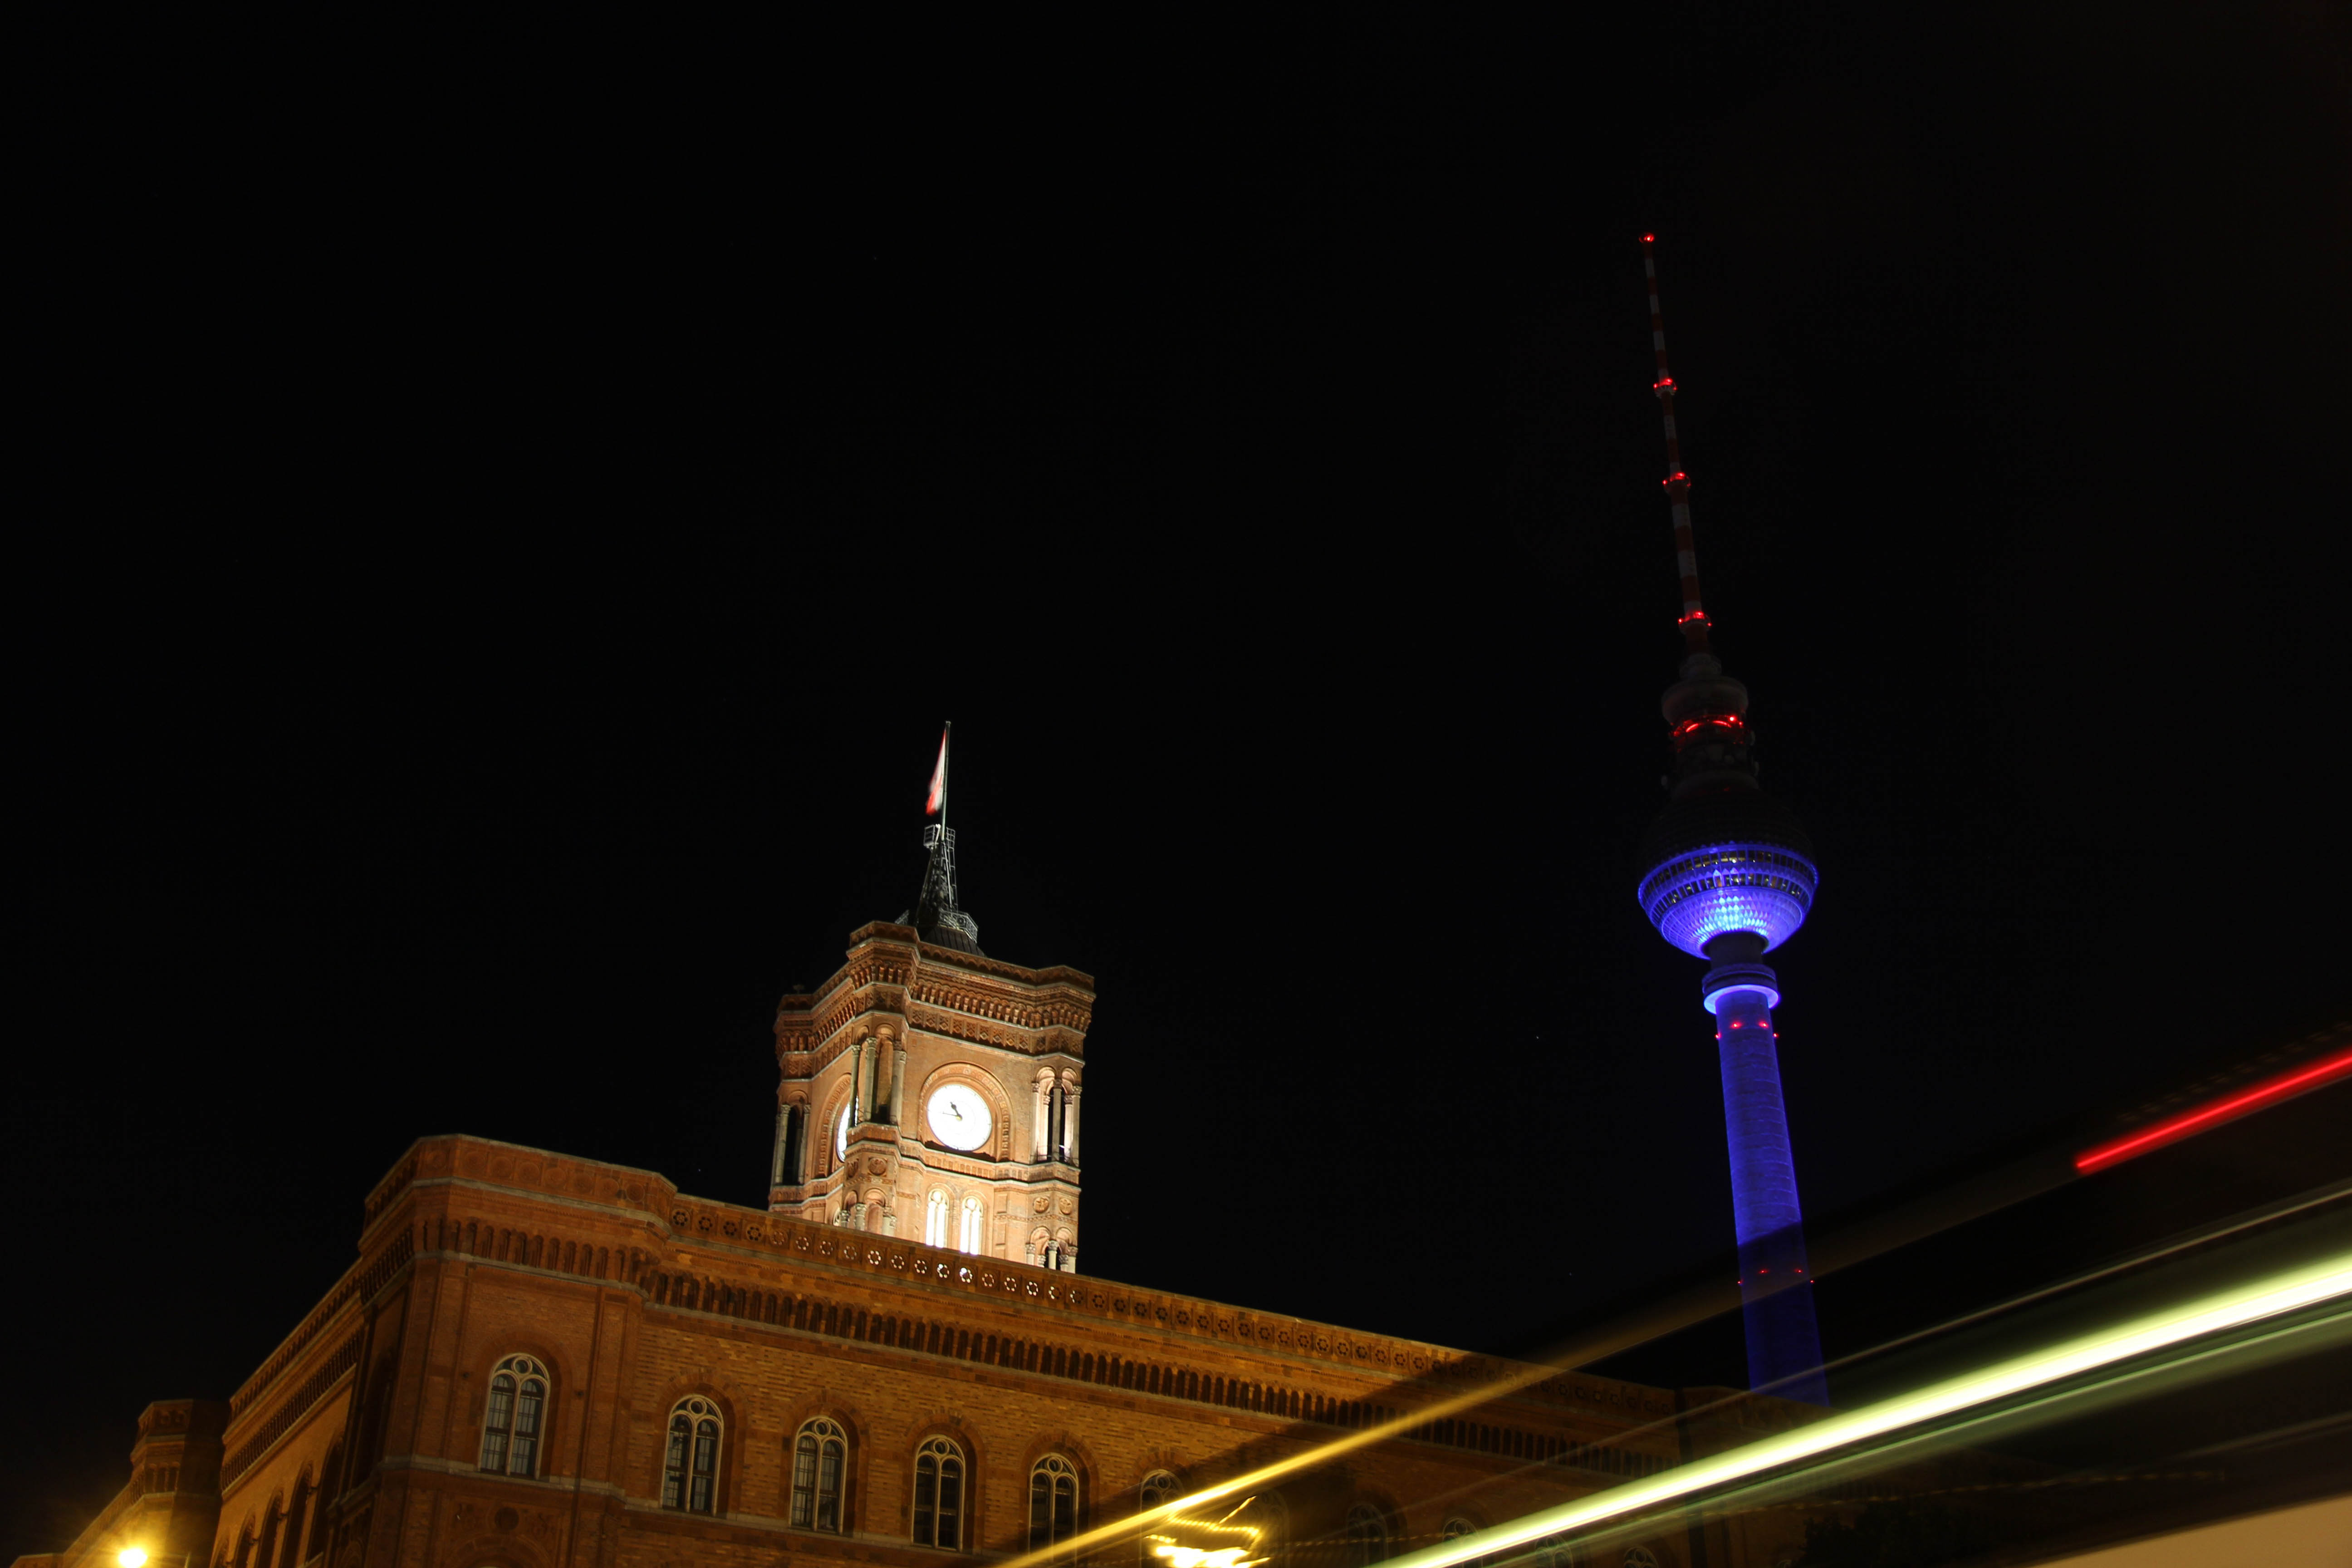 A bus streak past the Rotes Rathaus (Red City Hall) and the Fernsehturm (TV Tower) lit up during the Festival of Lights in Berlin